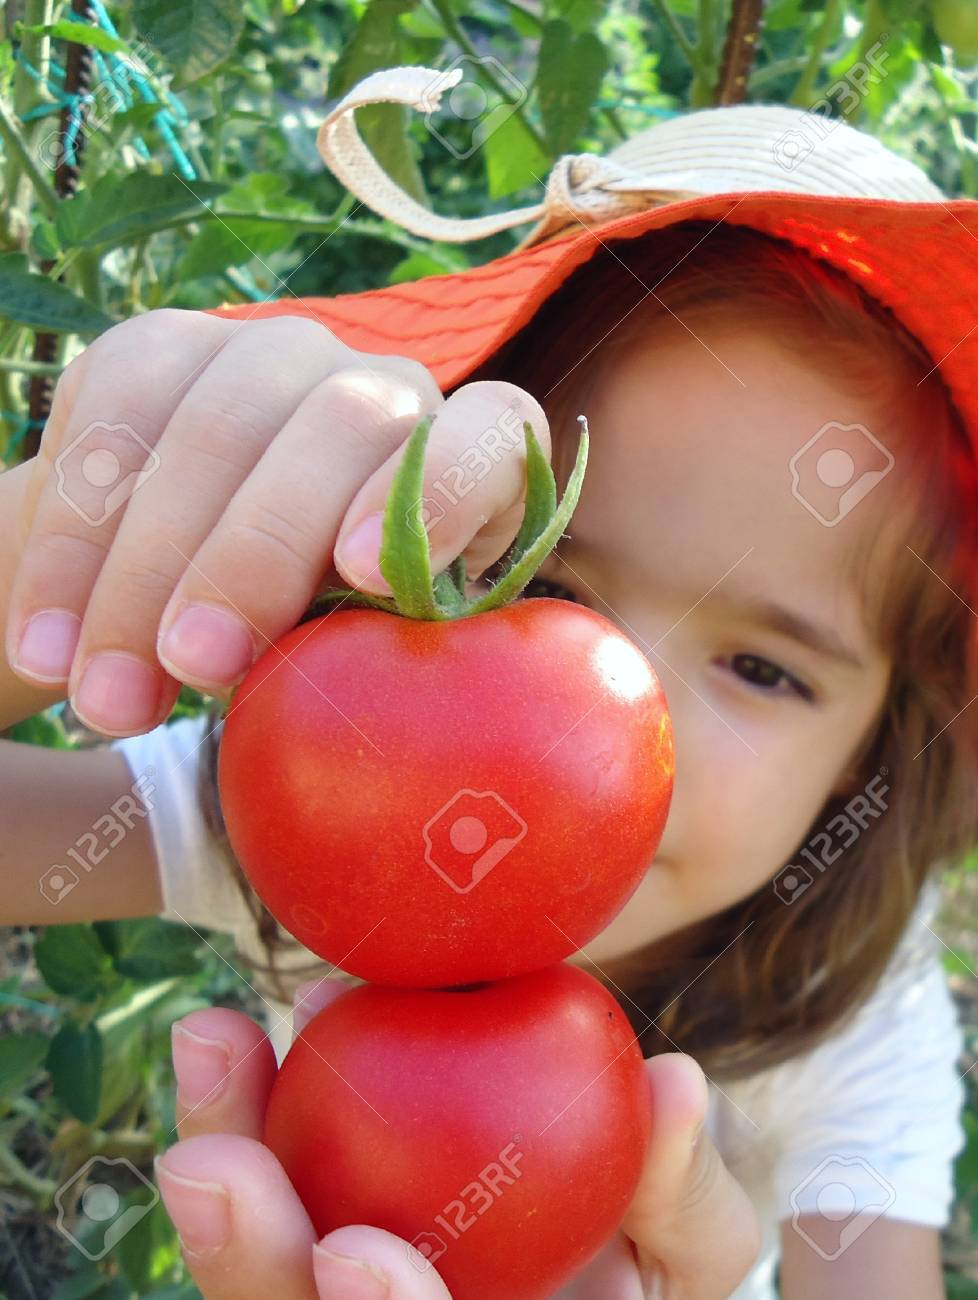 Little girl playing with tomatoes in organic garden Stock Photo - 22538212